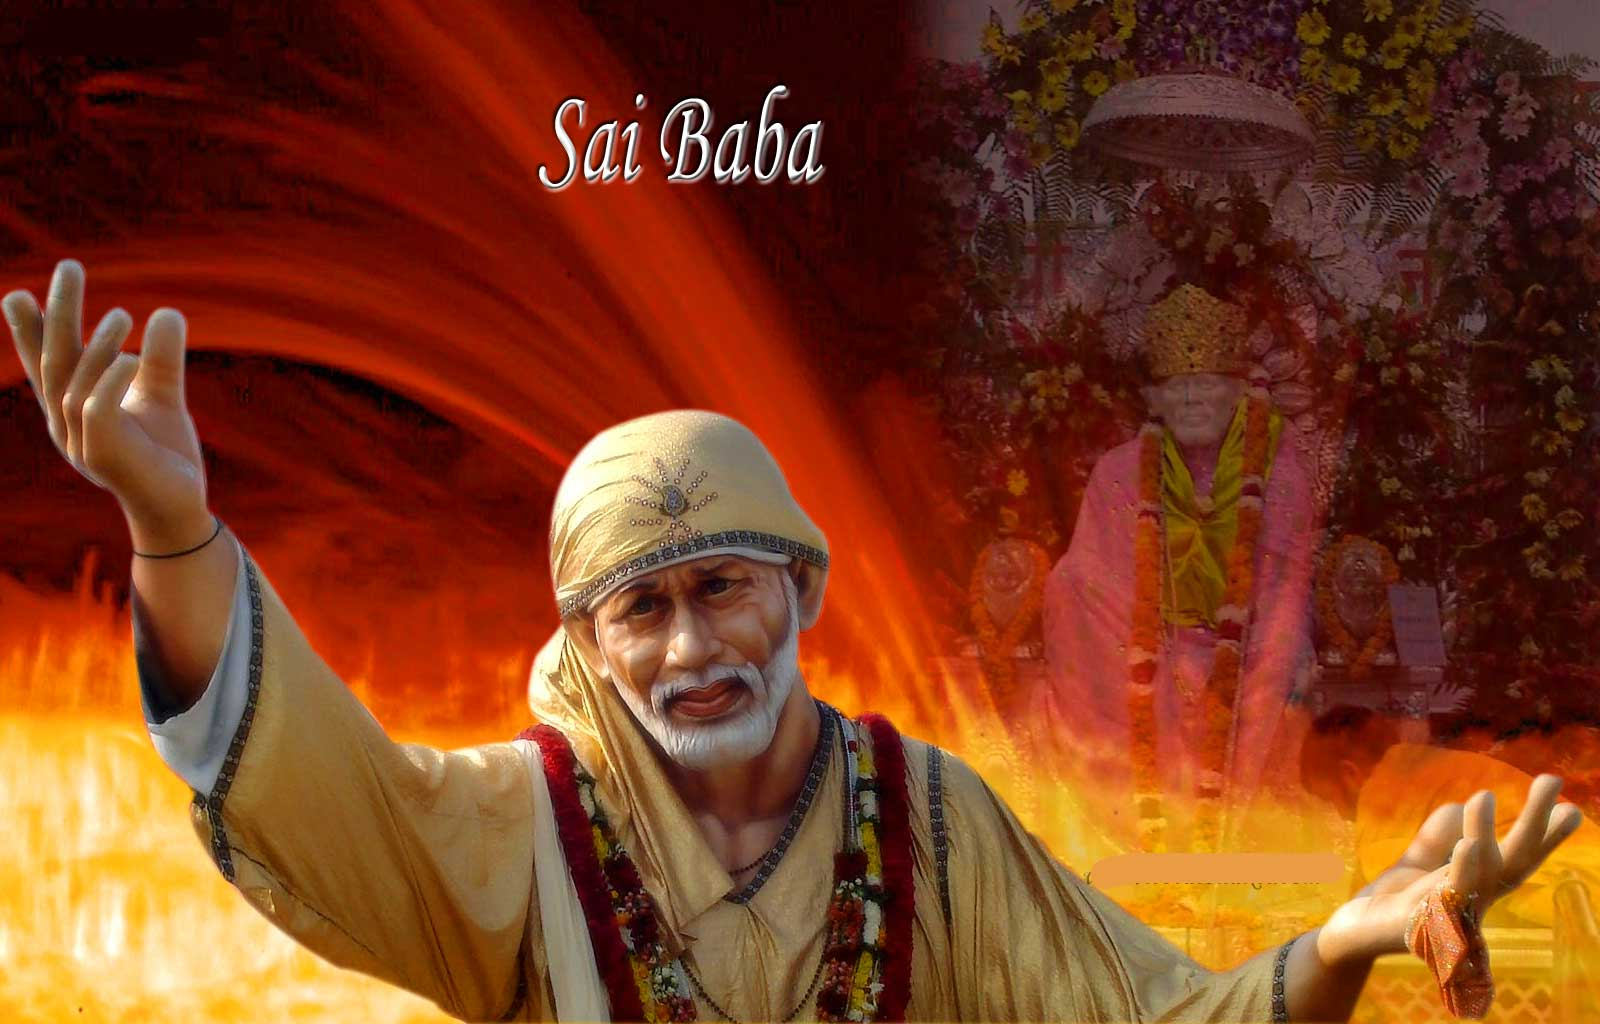 sai baba images high resolution